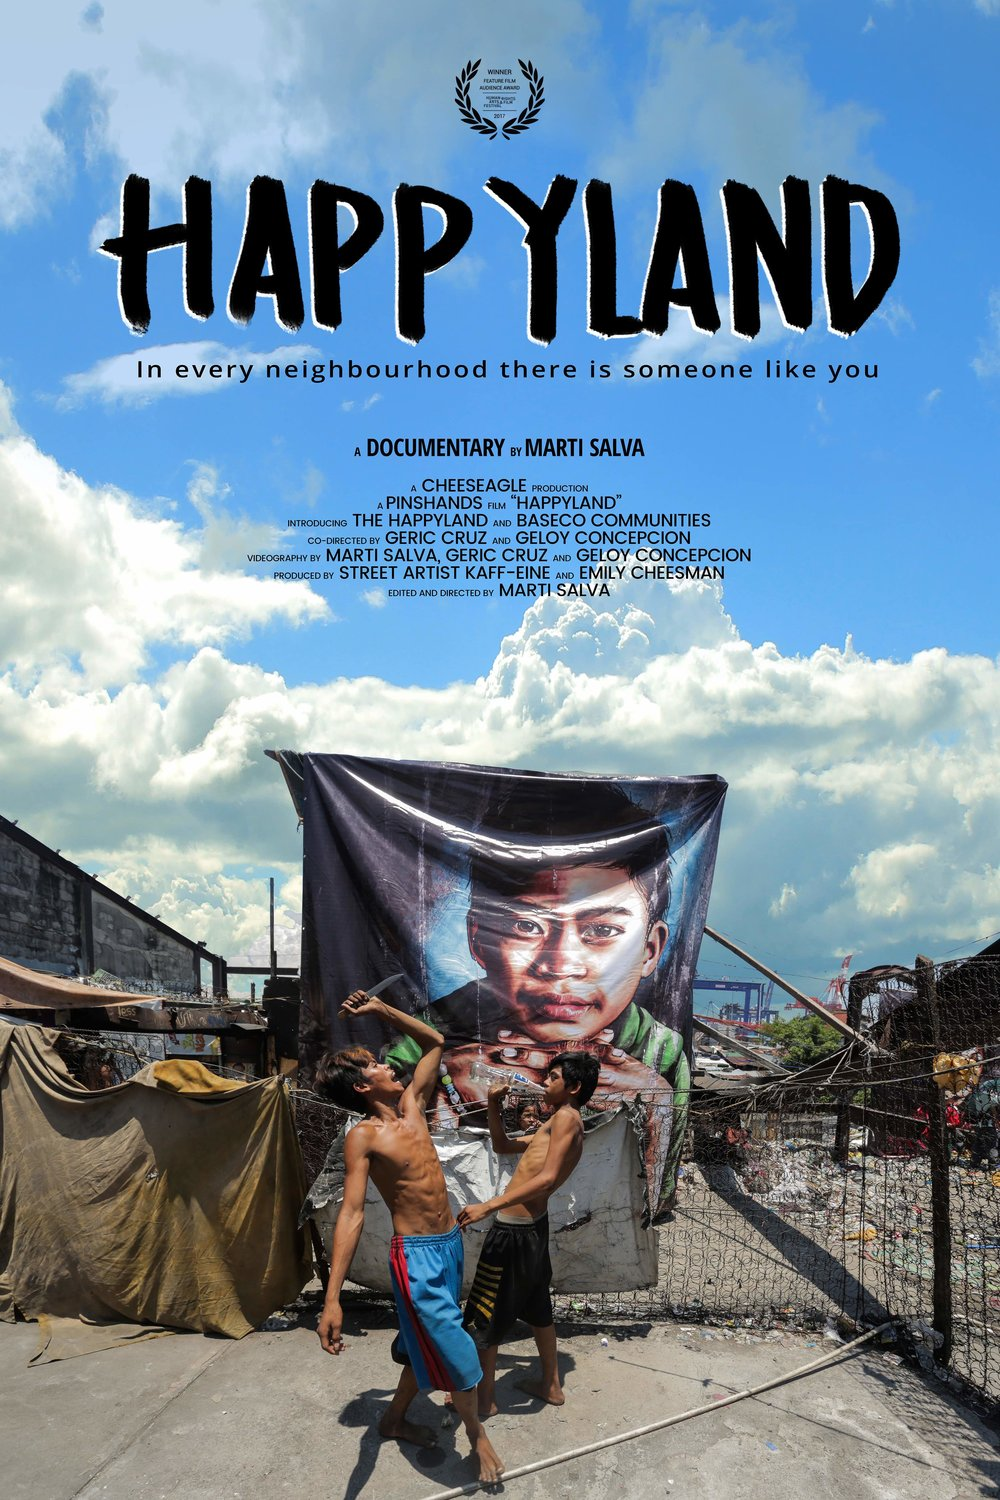 Happyland documentary poster